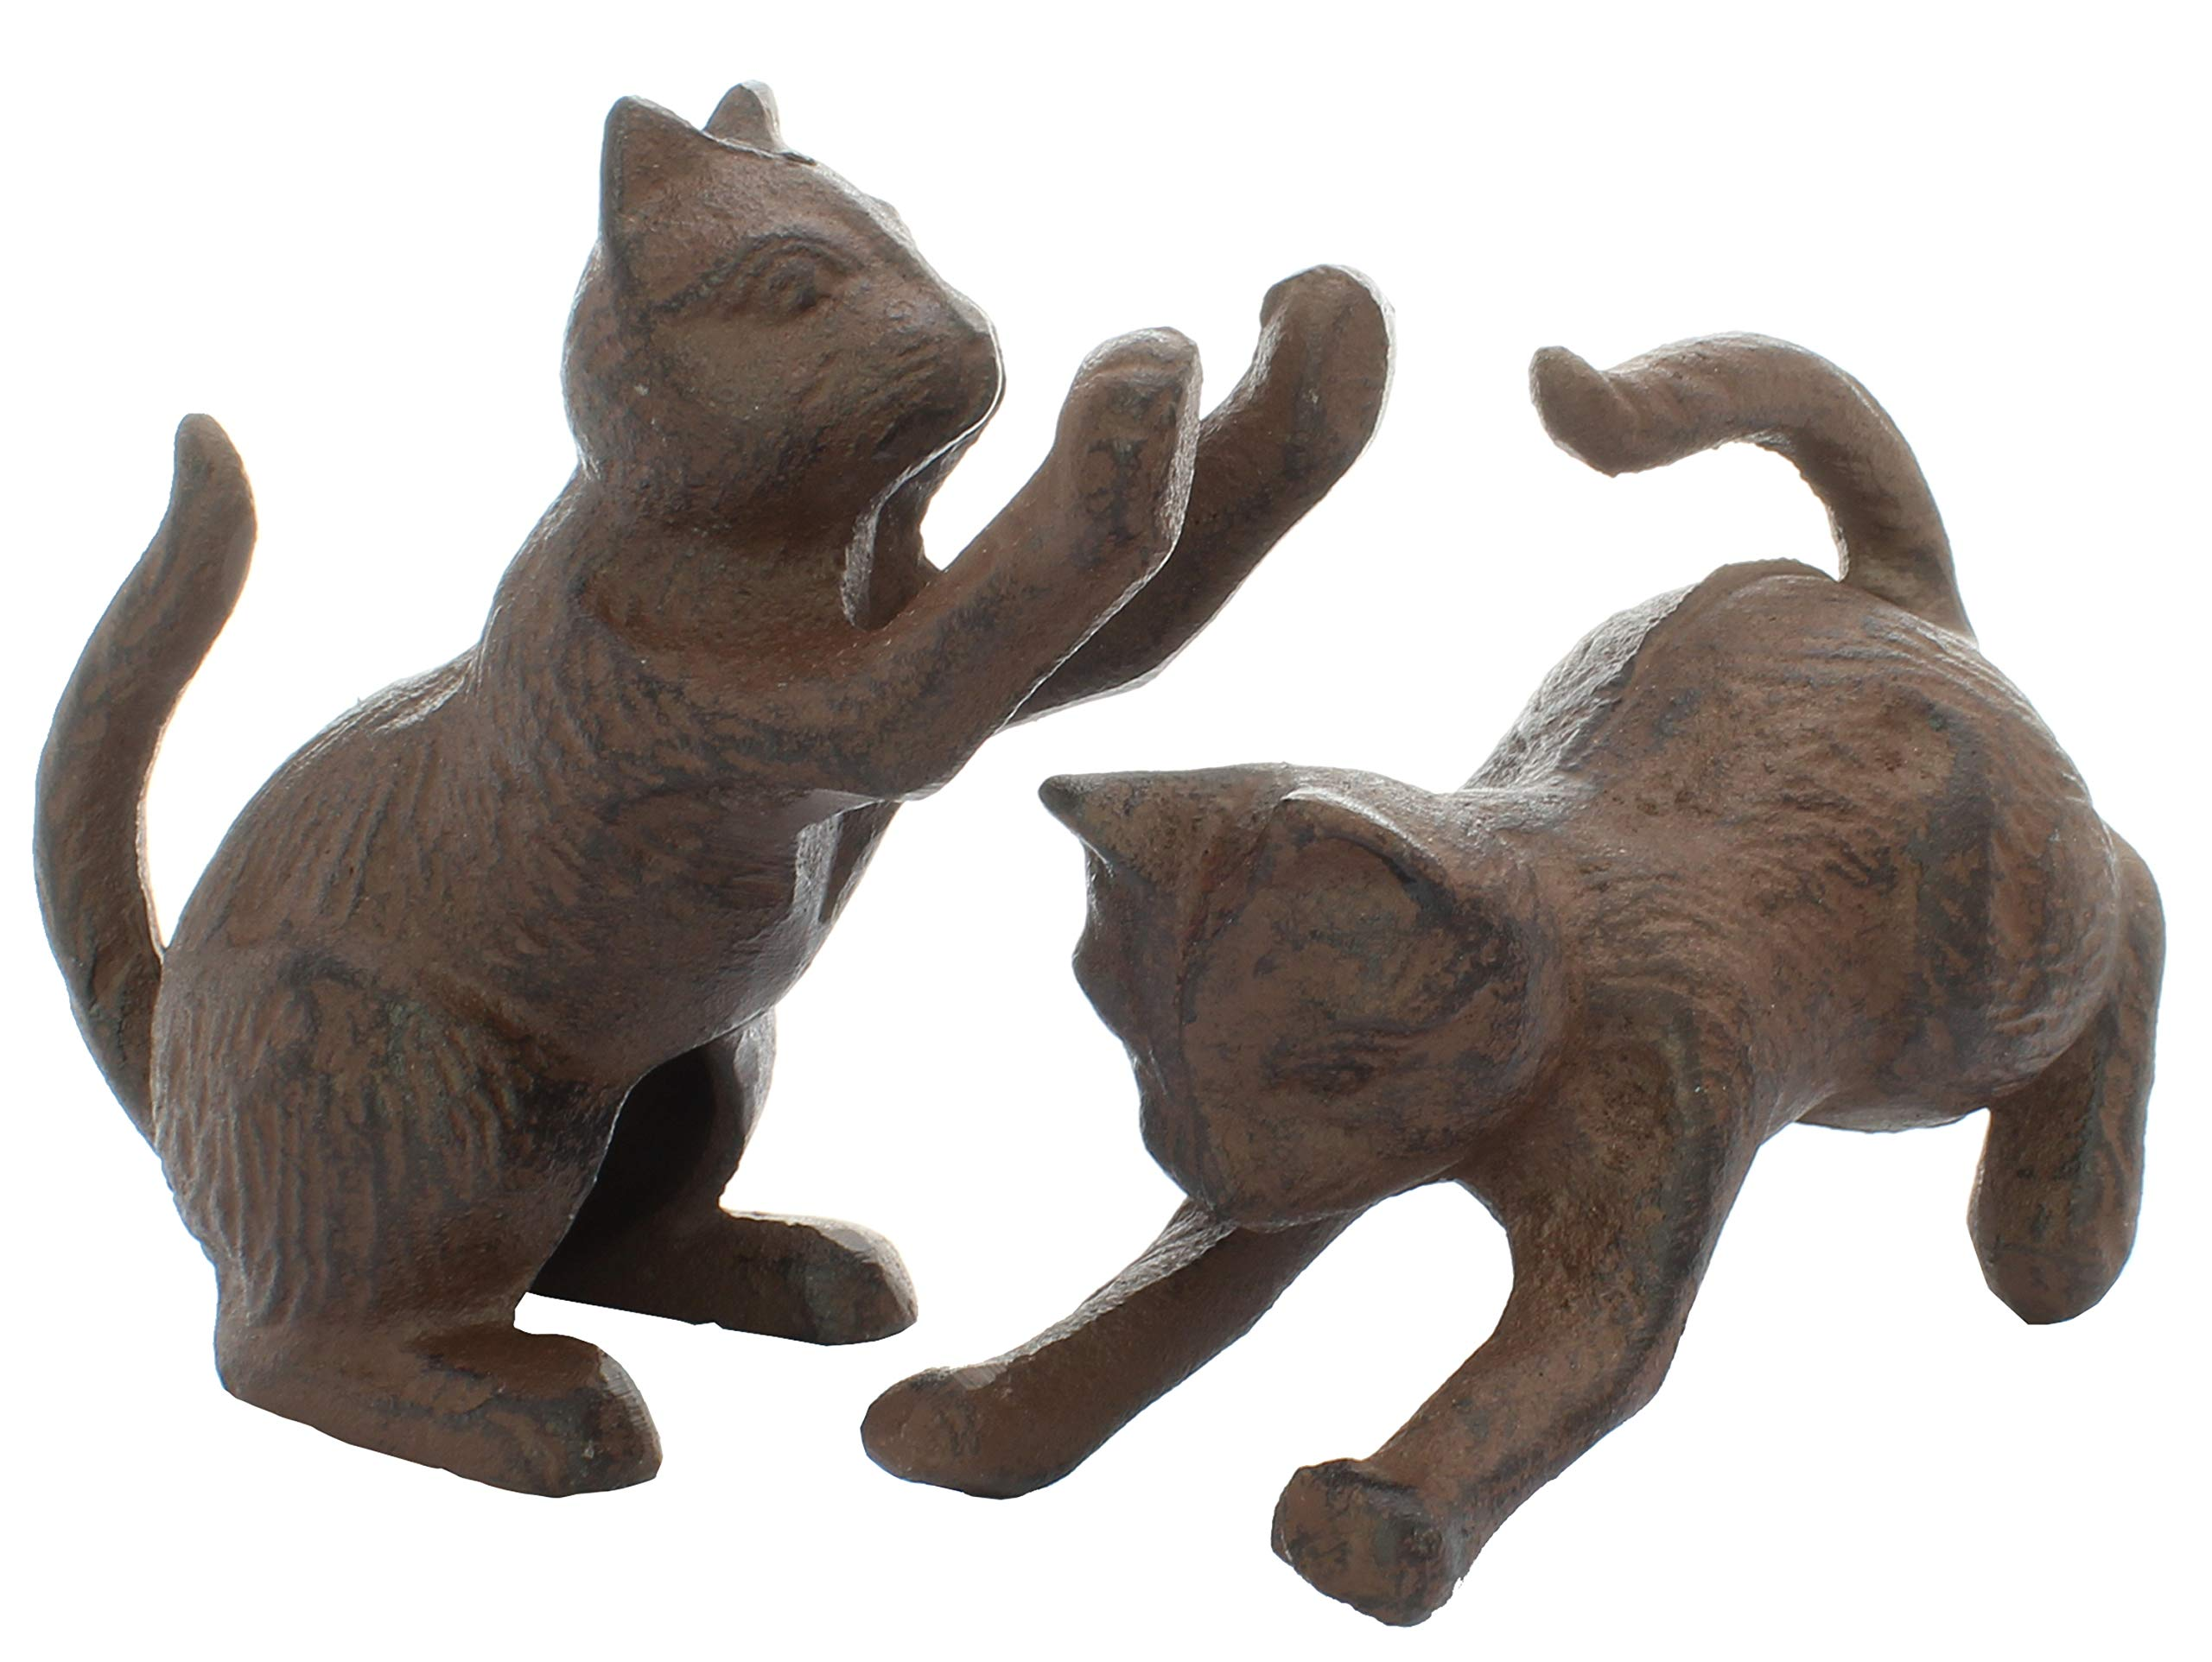 2 Pack Cast Iron Cat Book Ends Or Door Stop Decorative Rustic Look for Any Book Case Stop Your Bedroom Bath and Exterior Doors in Style Vintage Brown Color Book Stopper Cute Door Stopper Cat Figurine by Royal Brands